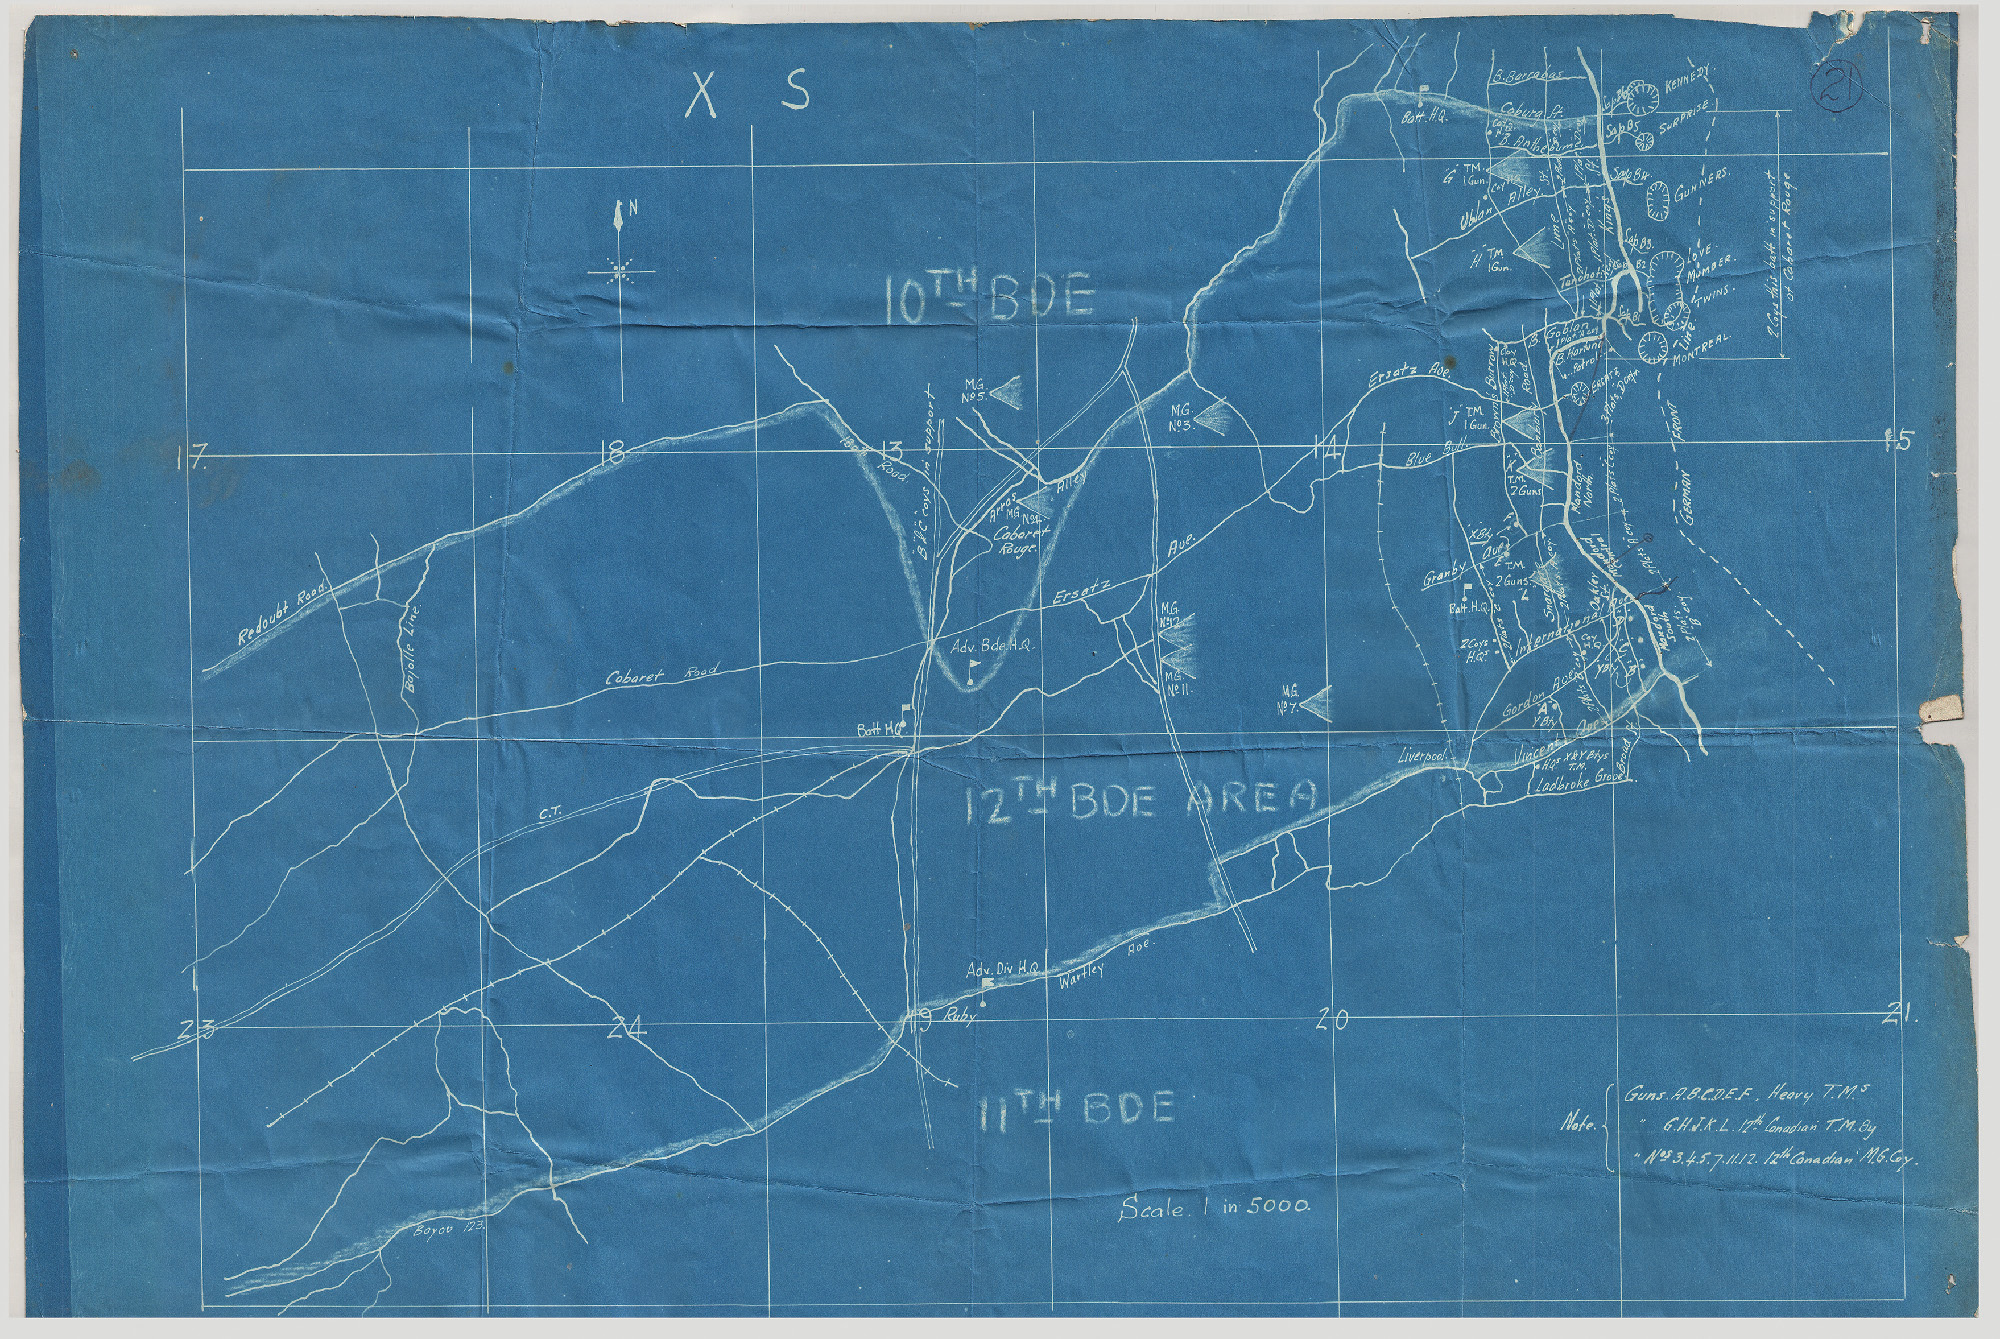 The boundaries of 12 Brigade's sector at Vimy. The 72nd Battalion was on the Brigade's left flank and established dominance over both Ersatz and Montreal craters.